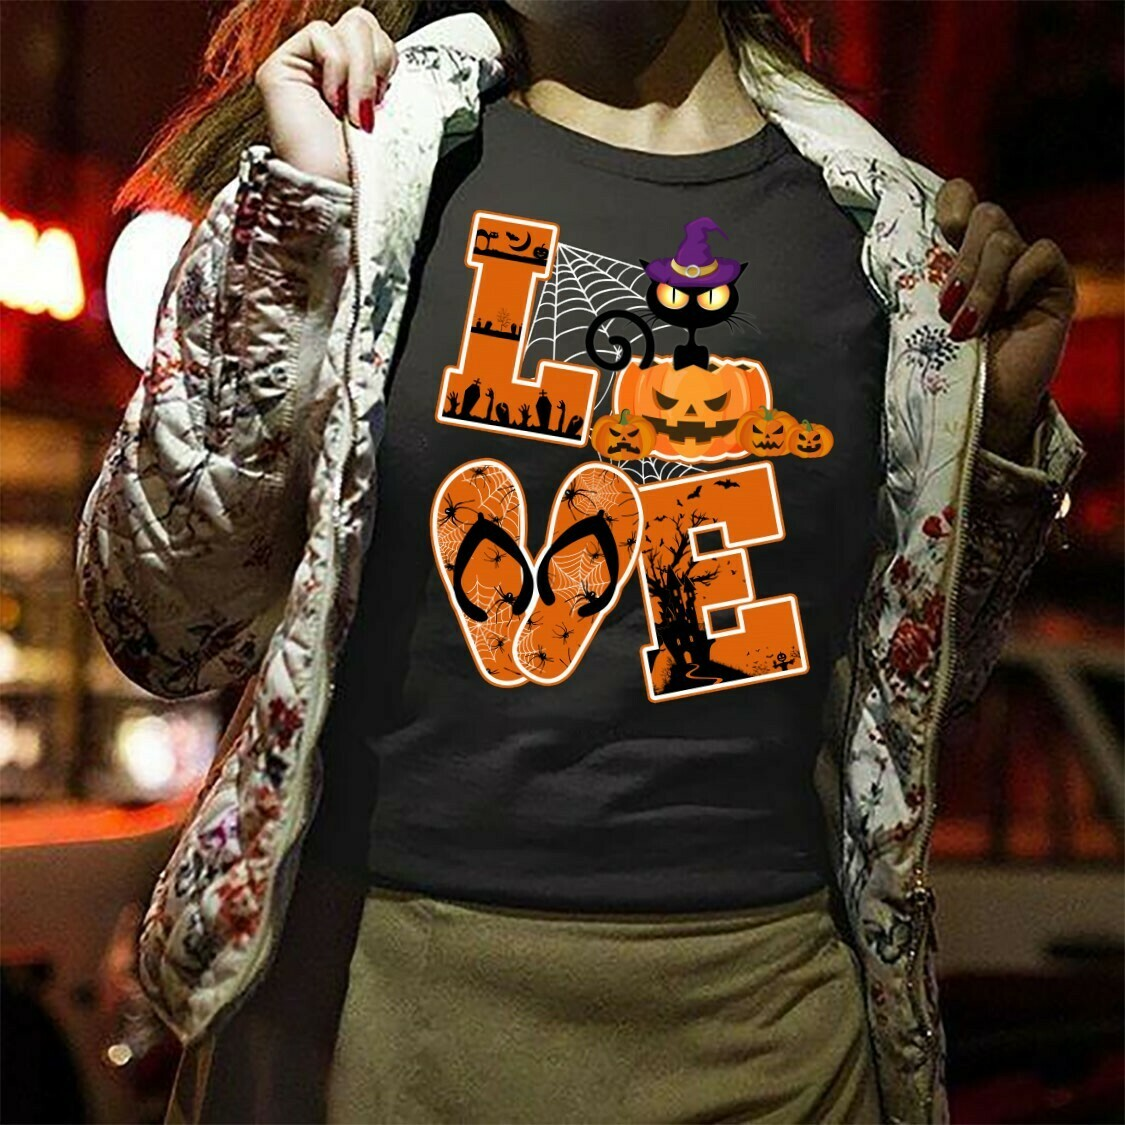 Love Cat Halloween Gift shirt For Lovers Cat Pumpkin Halloween Gift shirt for Women Mother Grandma Long Sleeve Sweatshirt Hoodie Jolly Family Gifts